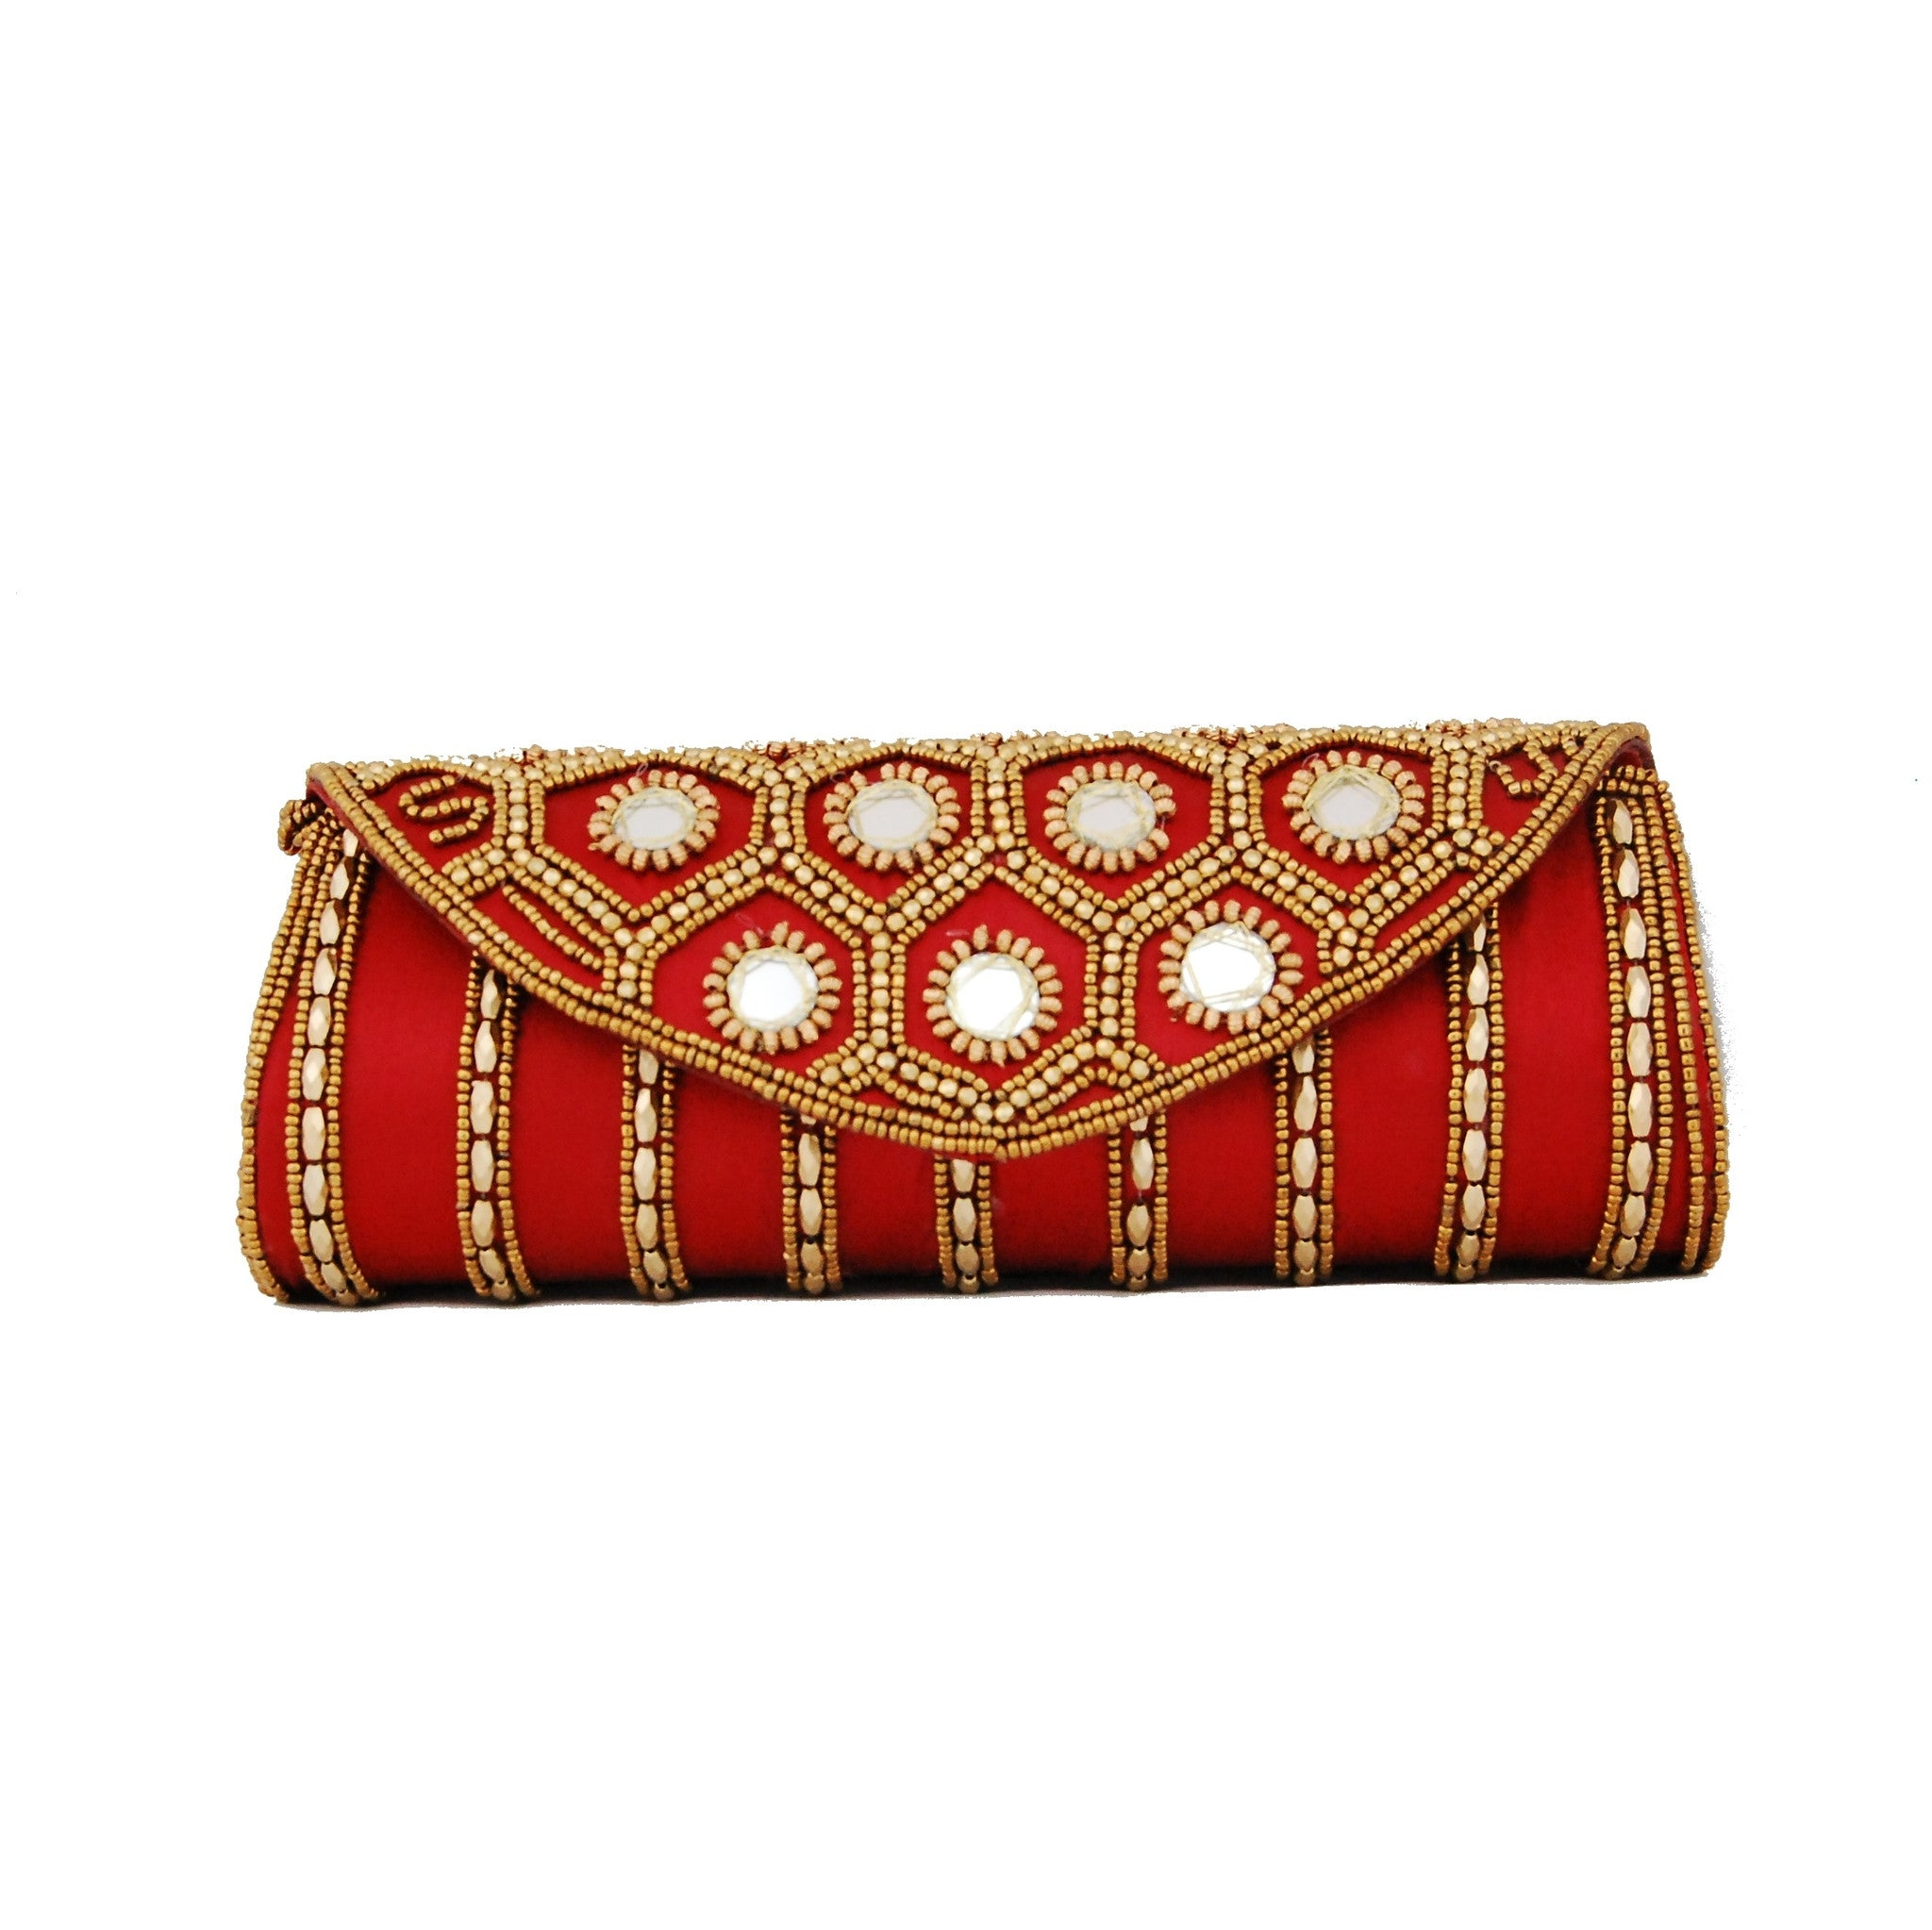 Maroon color Dupion Silk Clutch Bag with beads and Stone work - Boutique4India Inc.